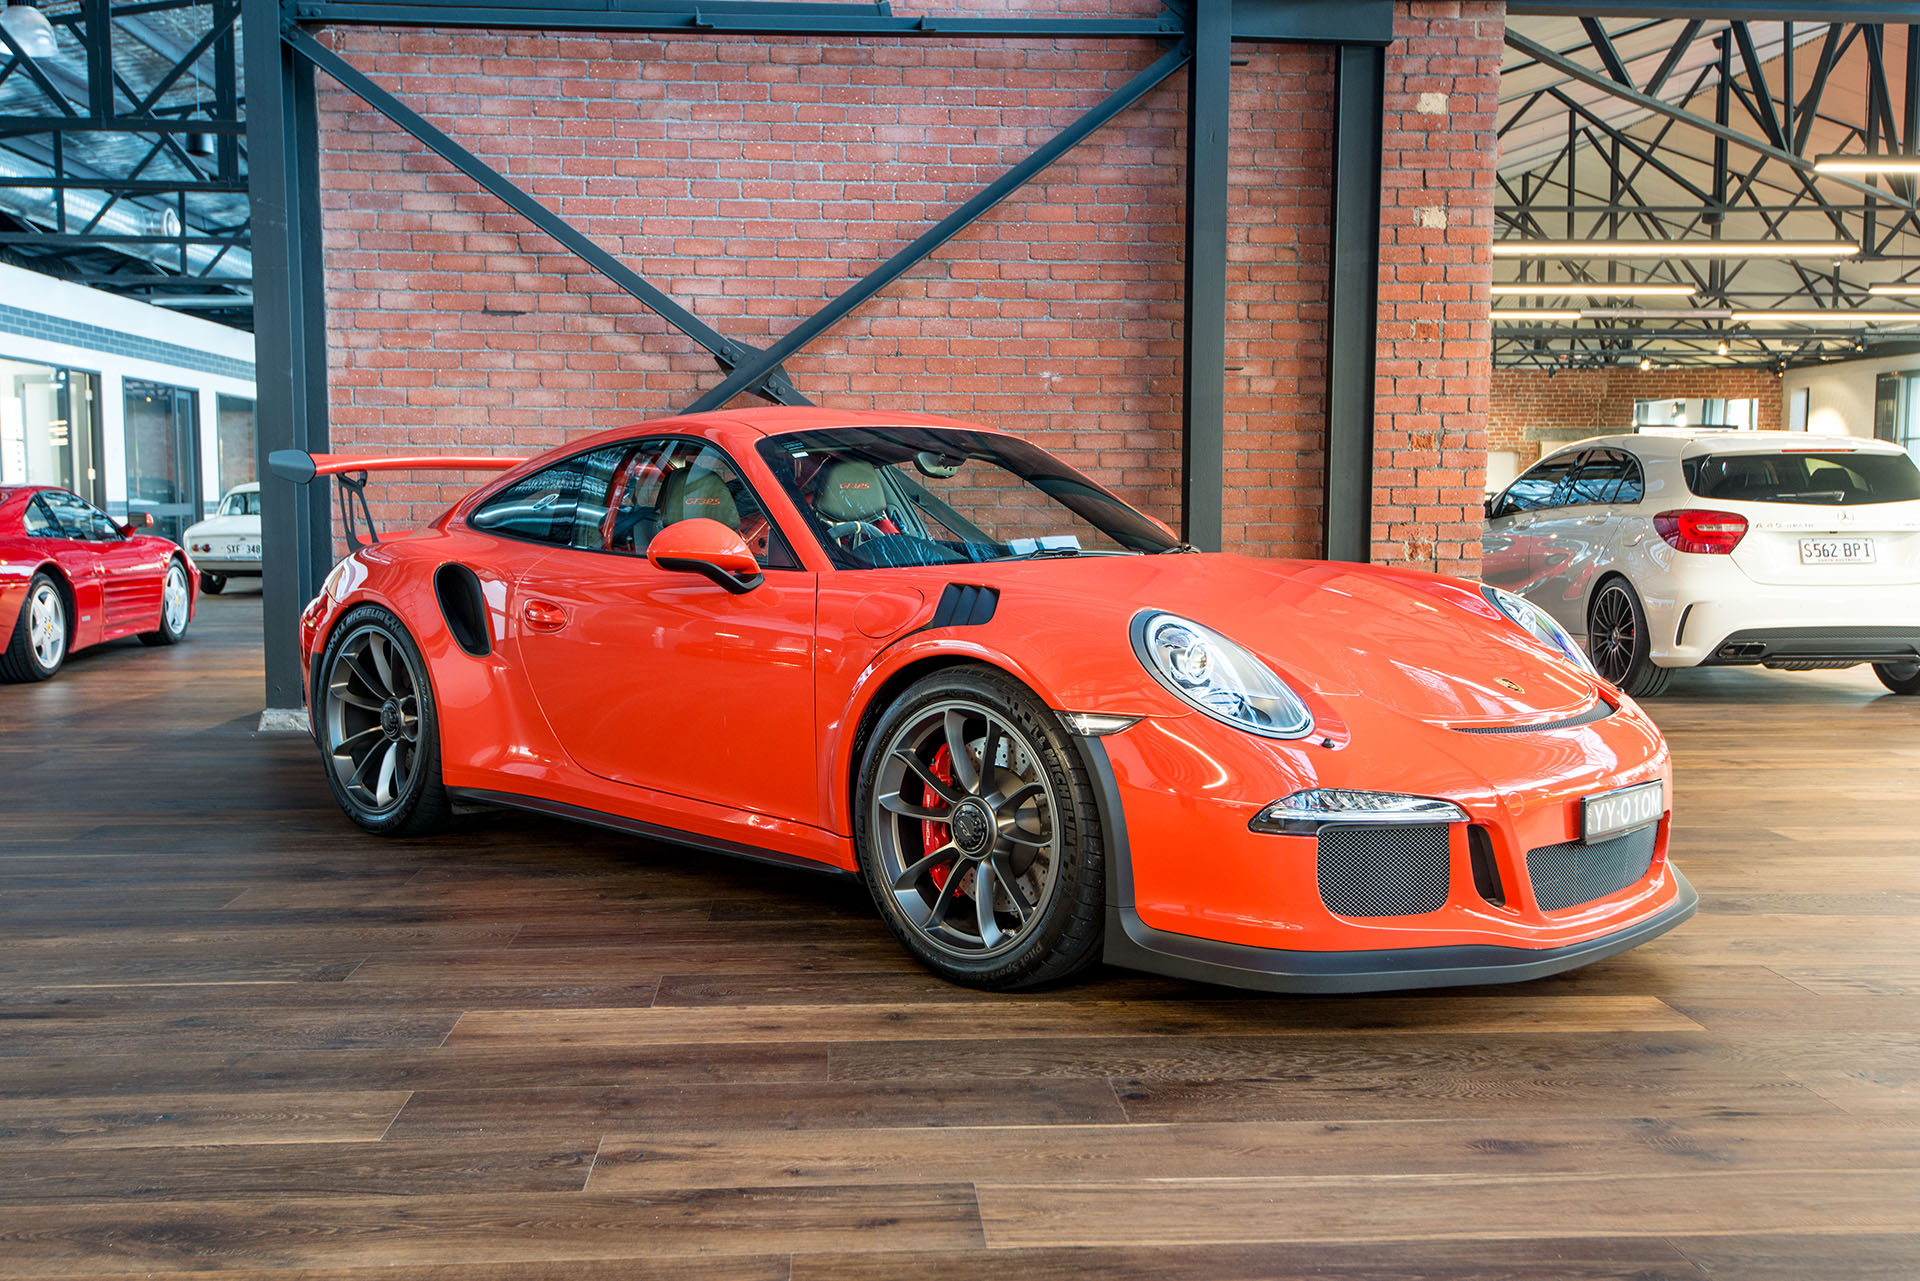 2016 porsche gt3 rs richmonds classic and prestige cars storage and sales adelaide. Black Bedroom Furniture Sets. Home Design Ideas